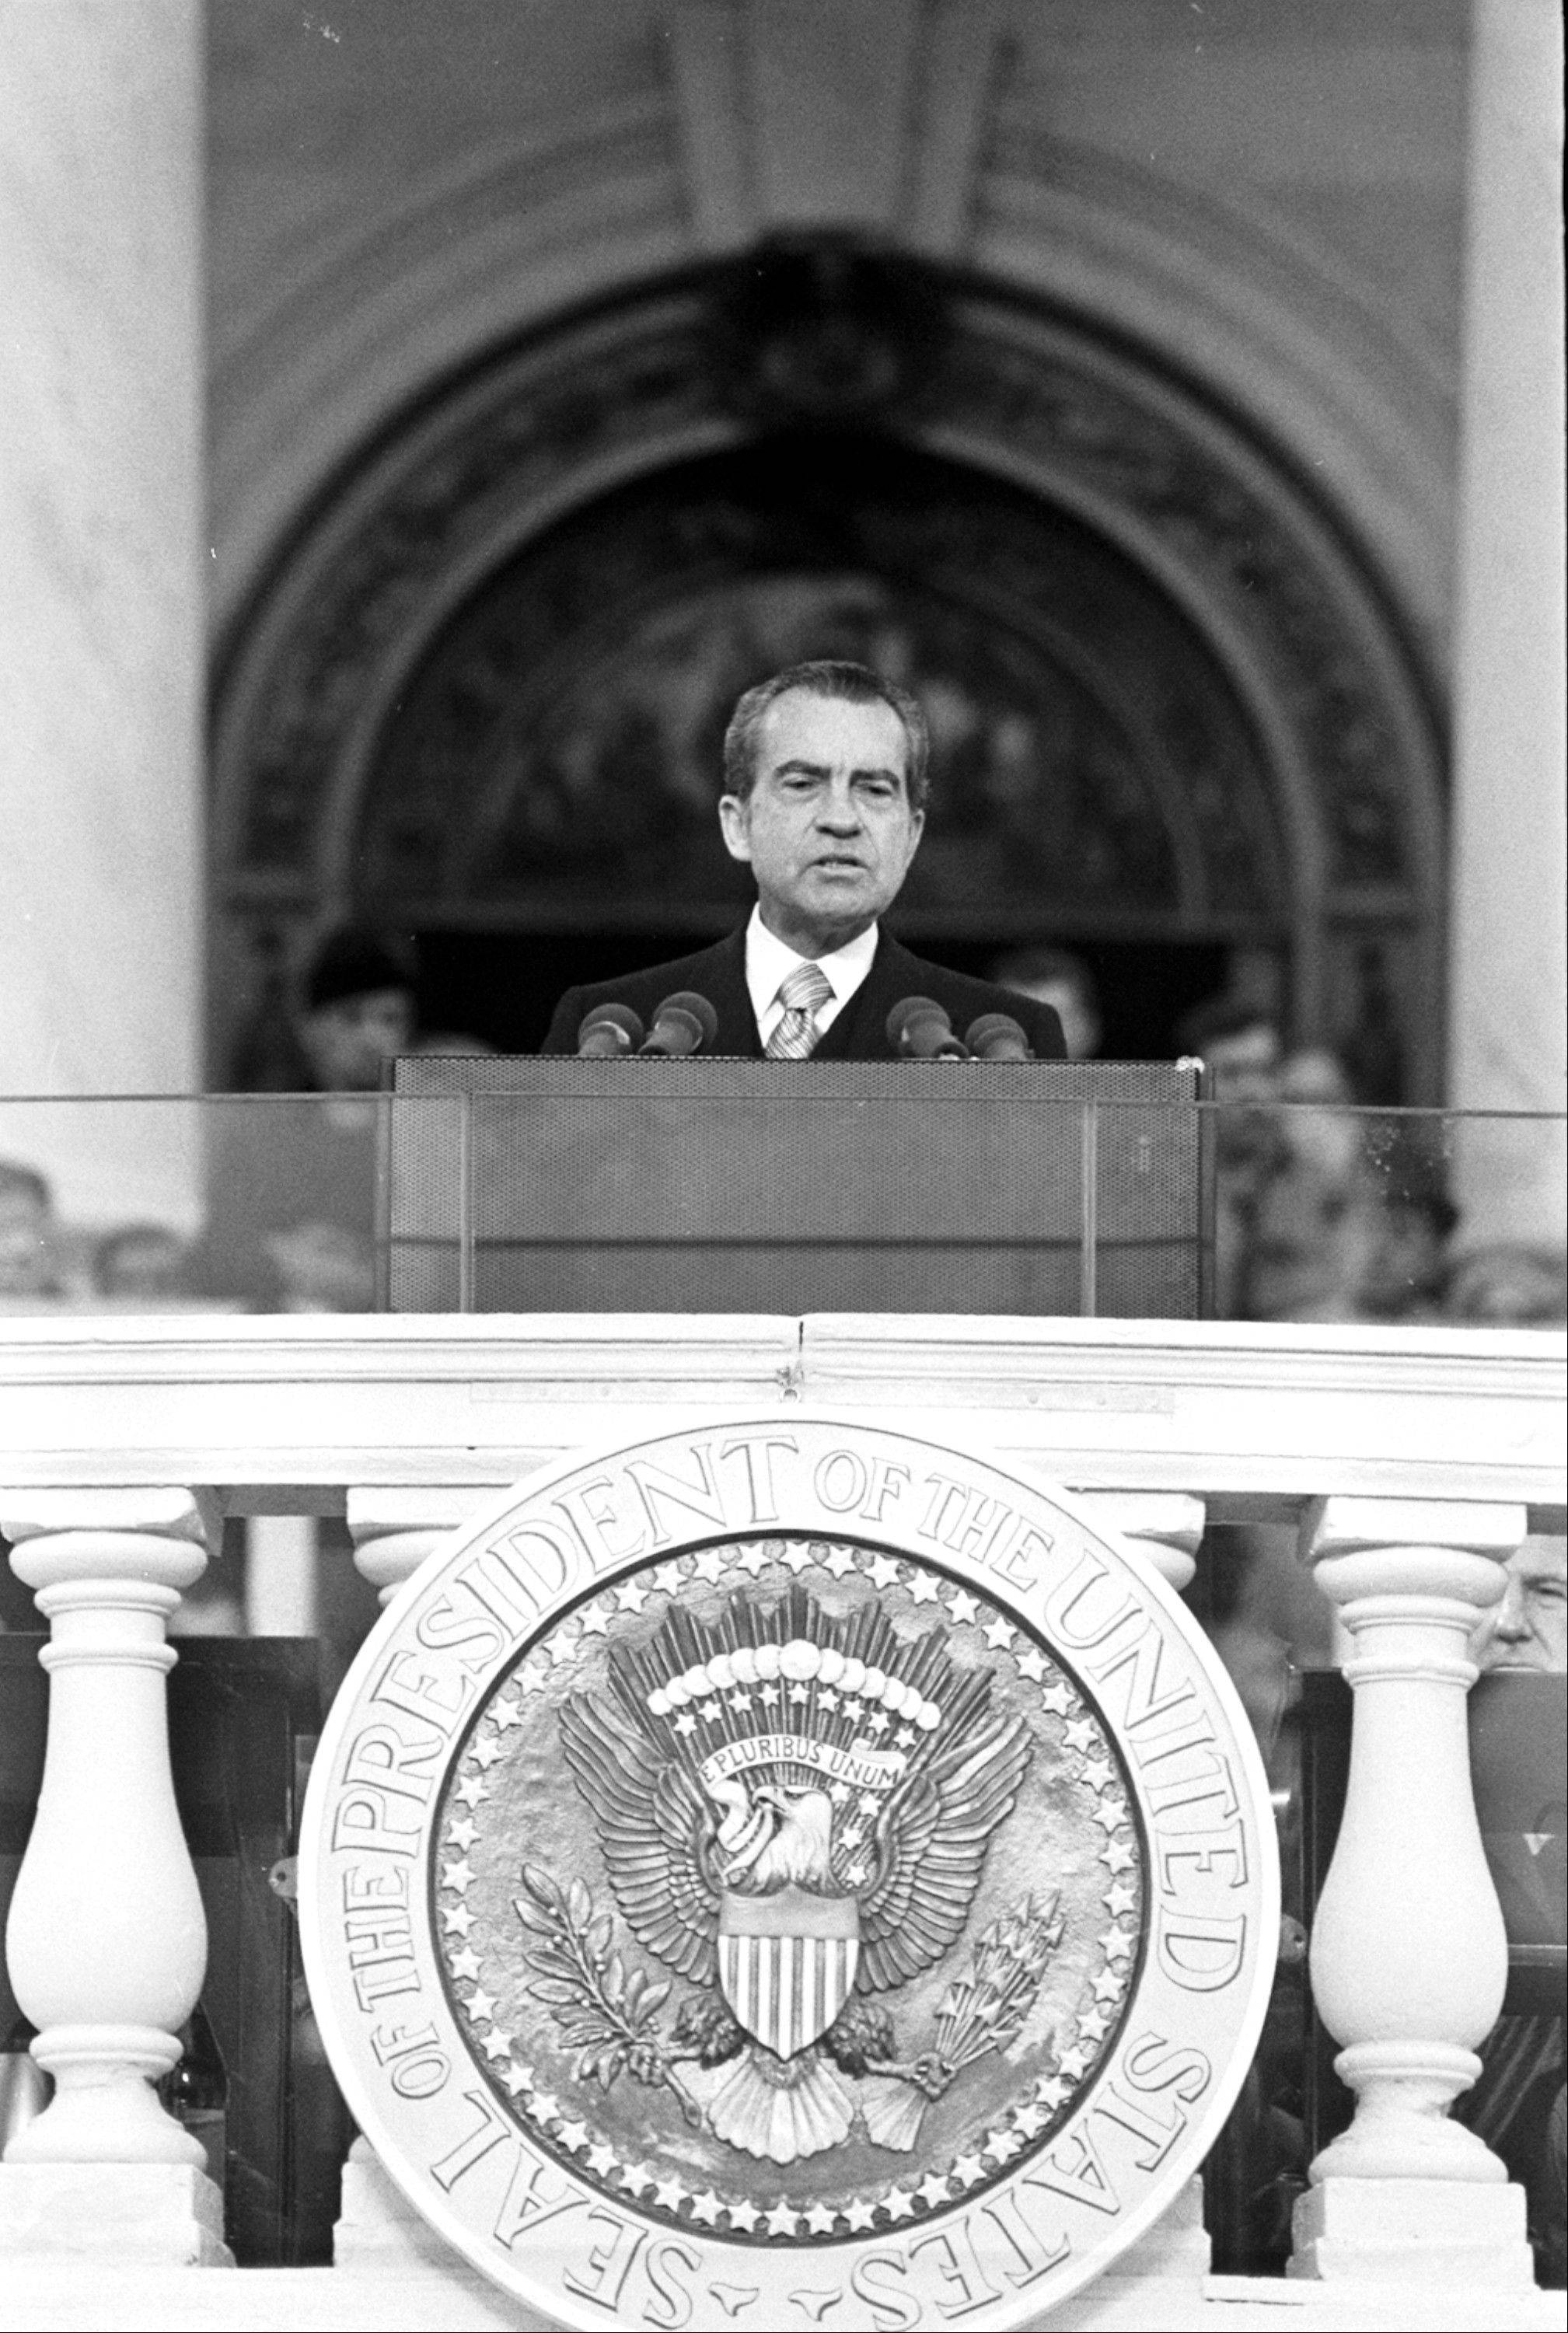 President Richard M. Nixon delivers his inaugural address, January 20, 1973, saying the world stands on the threshold of a new era of peace.